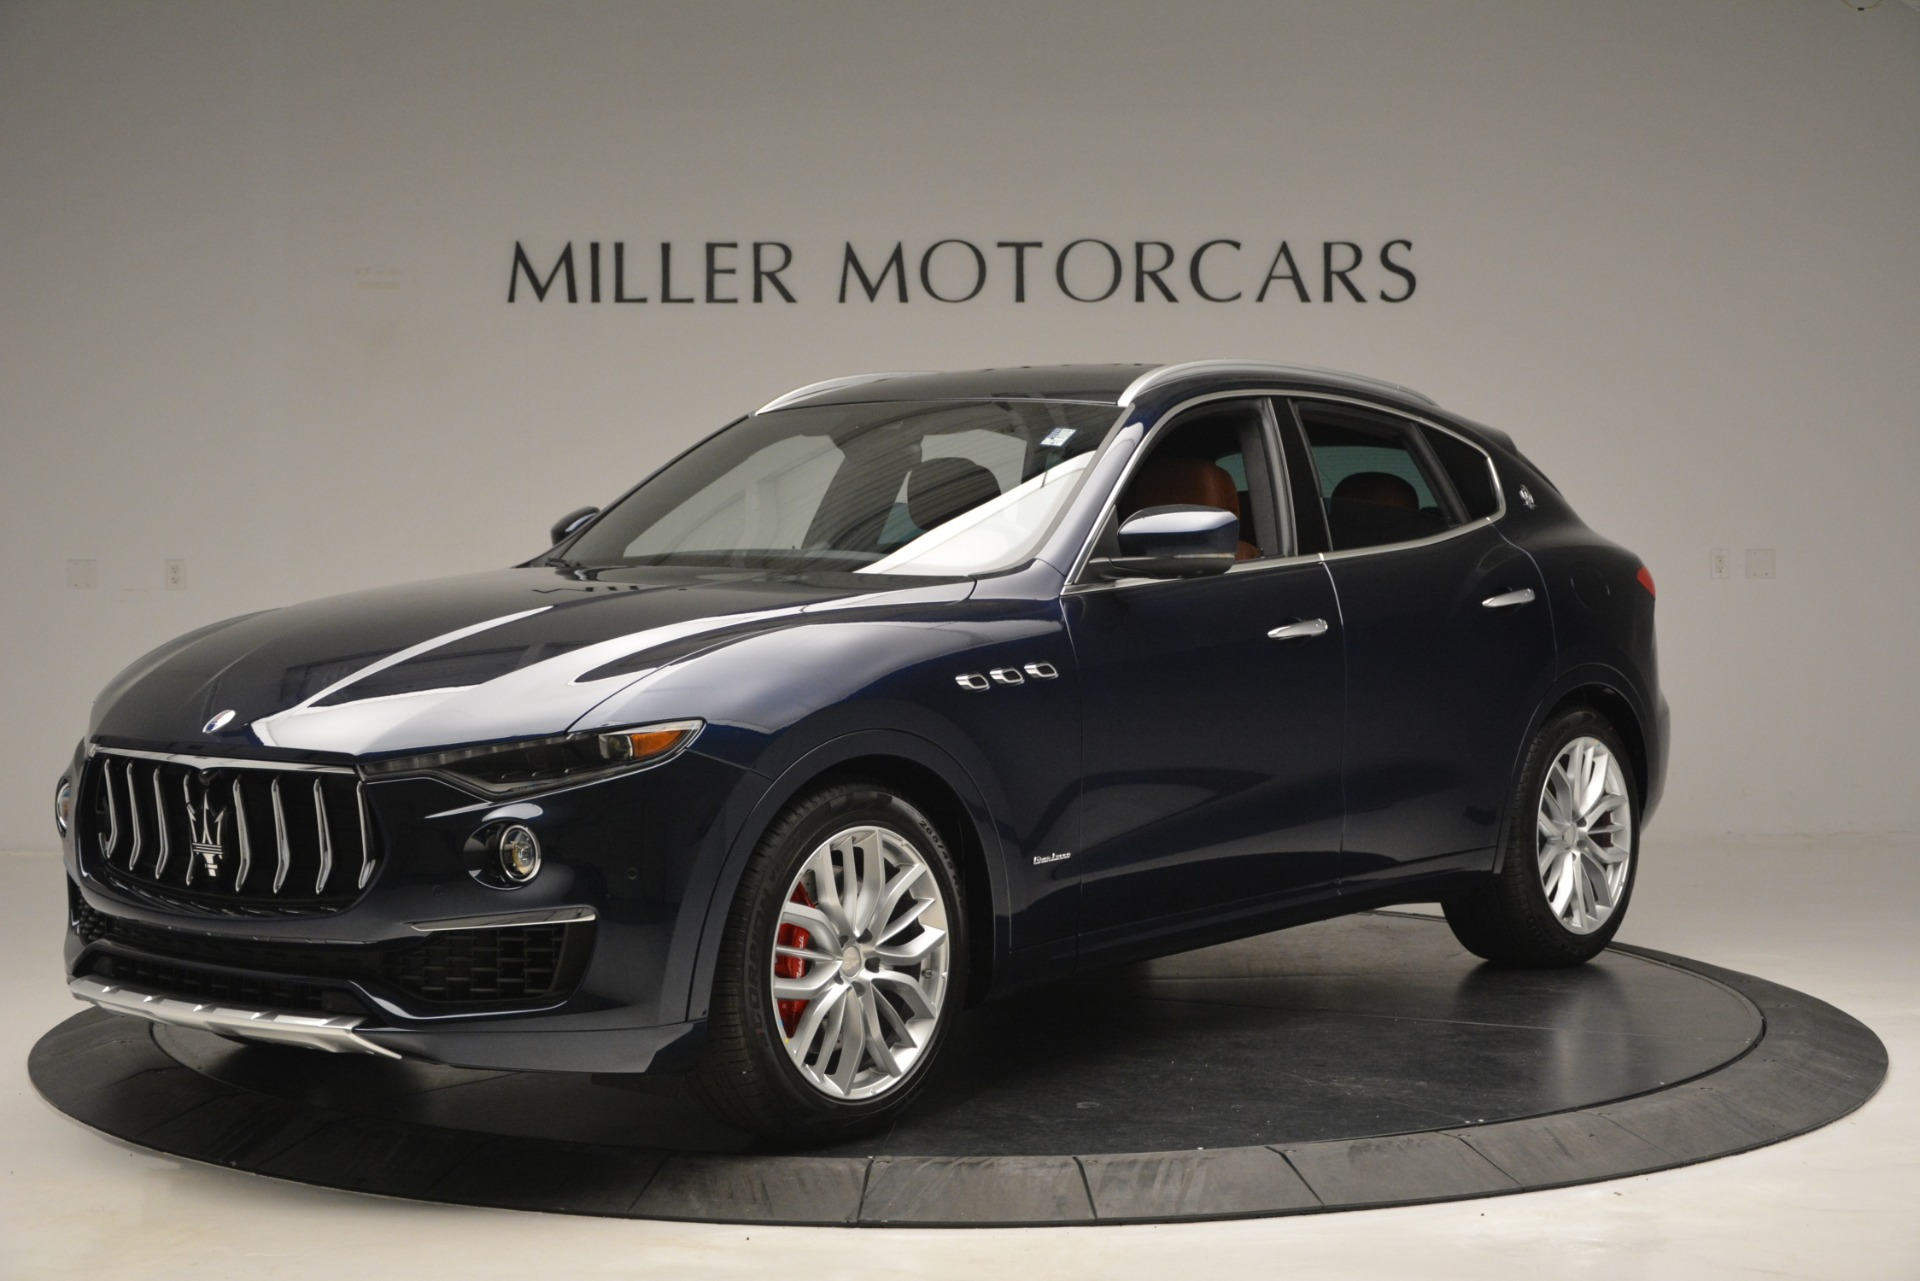 New 2019 Maserati Levante S Q4 GranLusso For Sale In Westport, CT 2868_p2